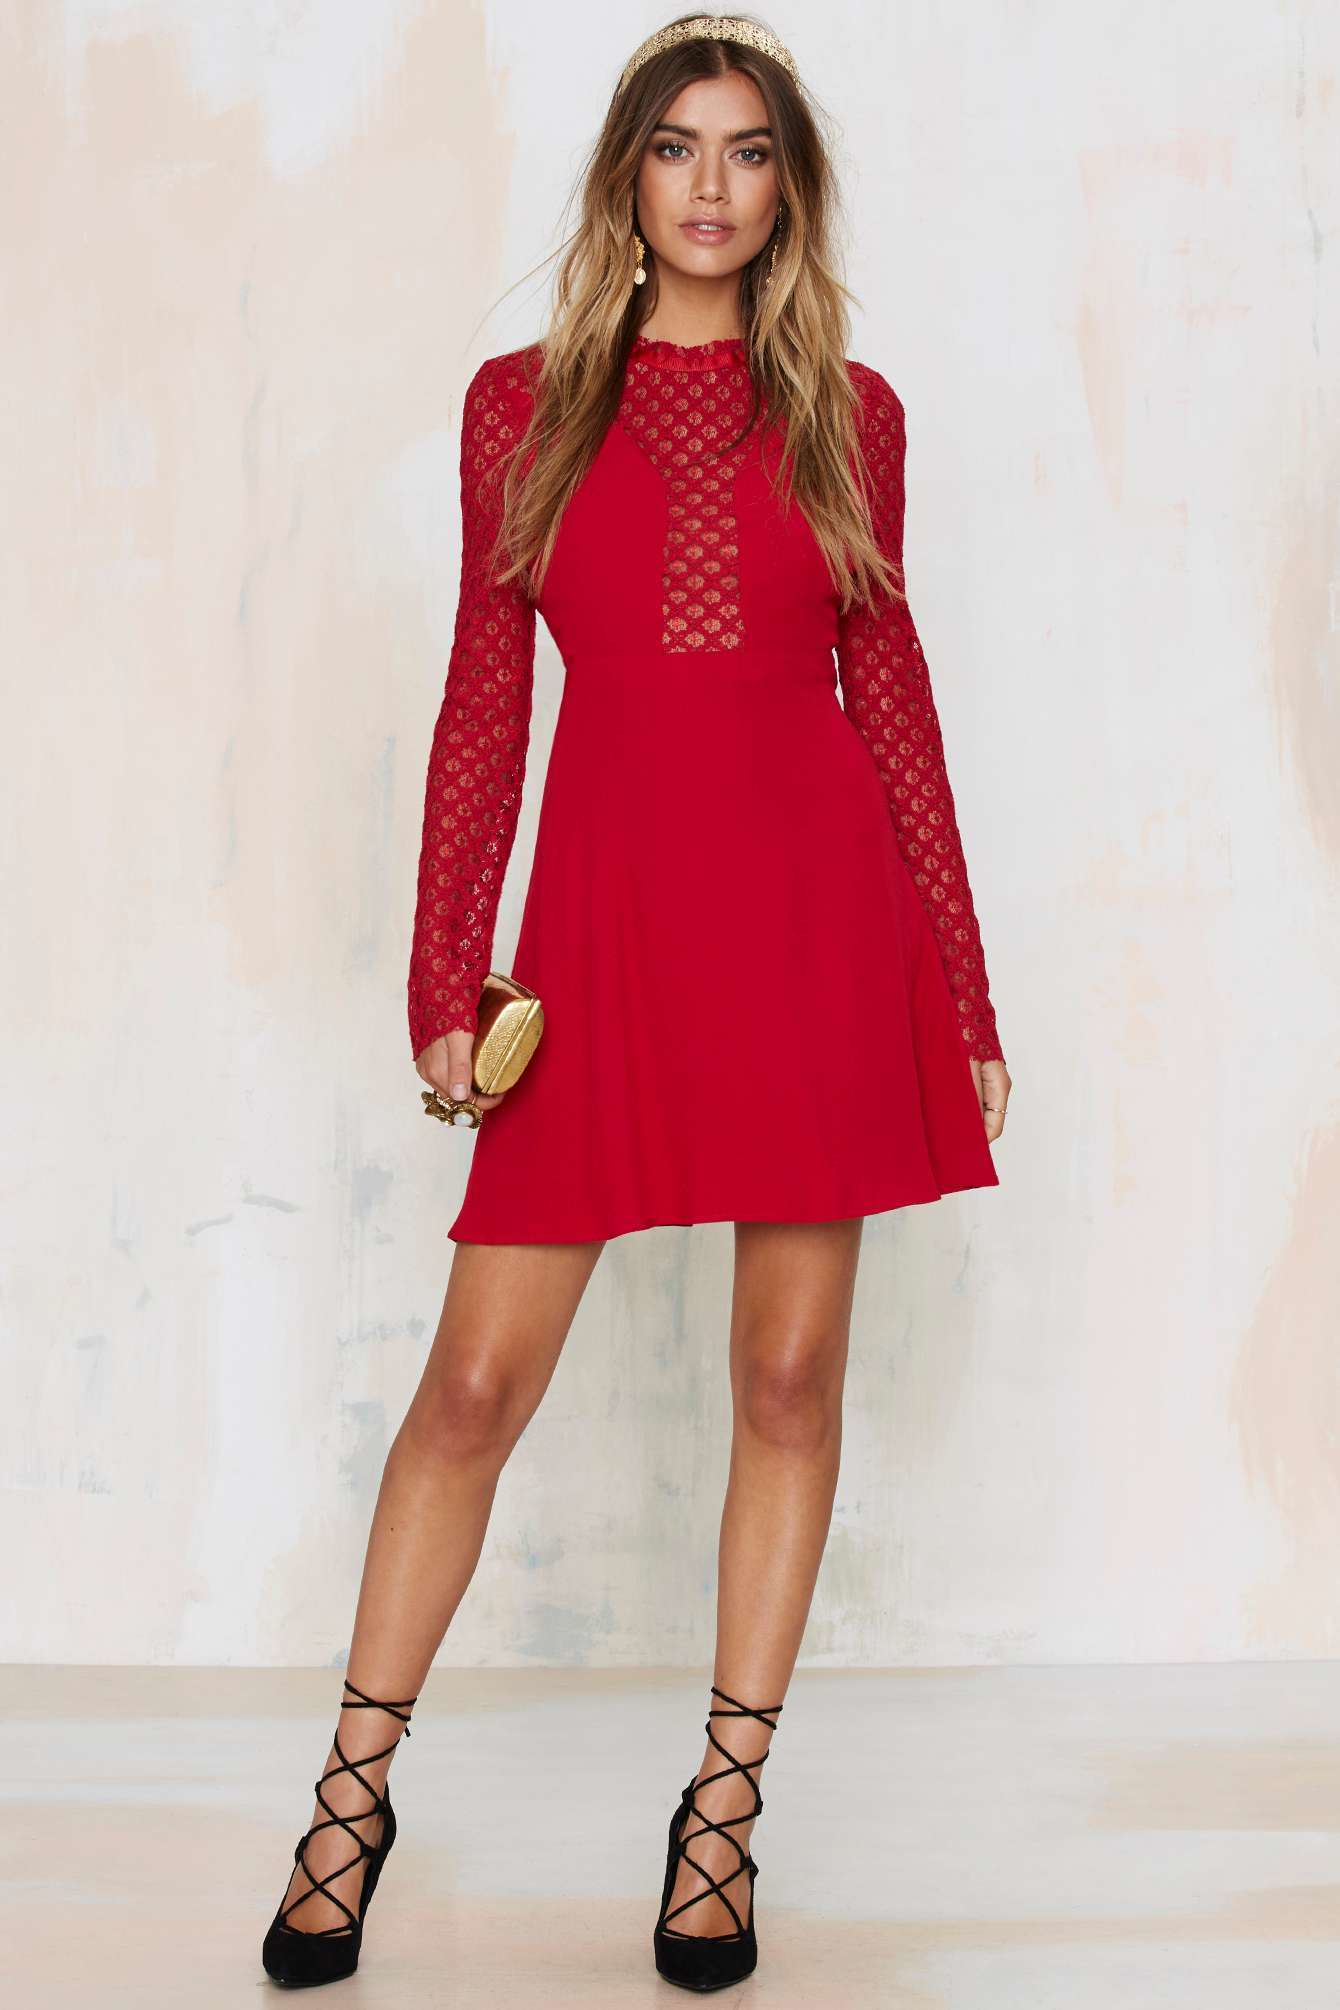 Lace dress nasty gal 20